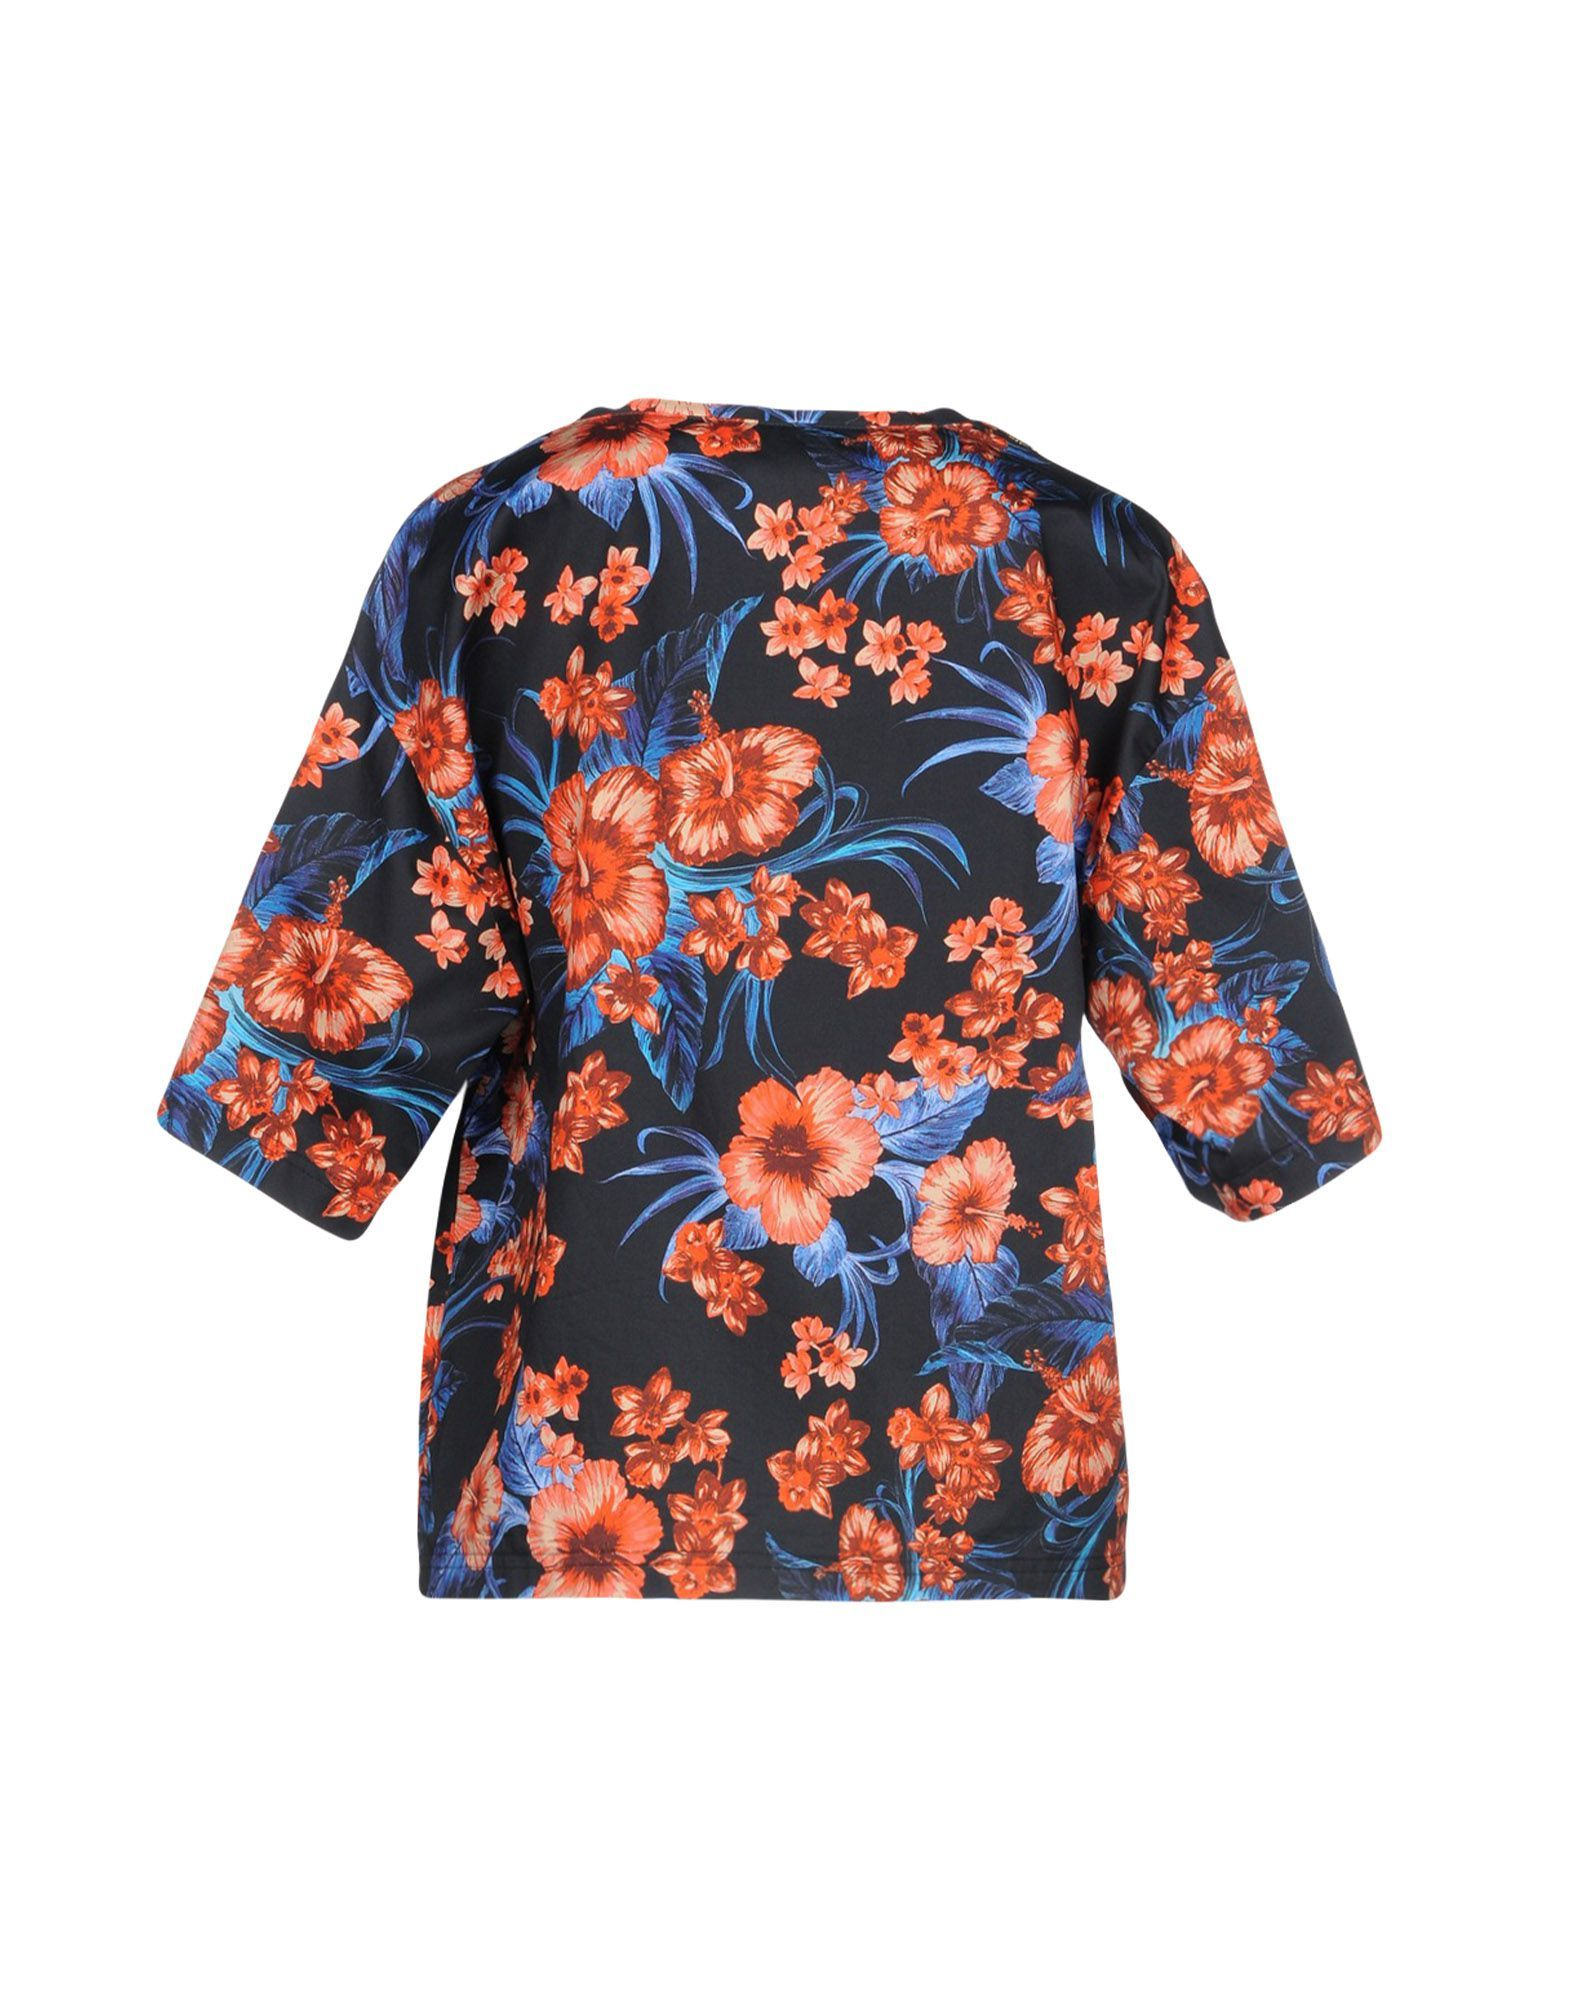 SHIRTS Fausto Puglisi Red Woman Cotton